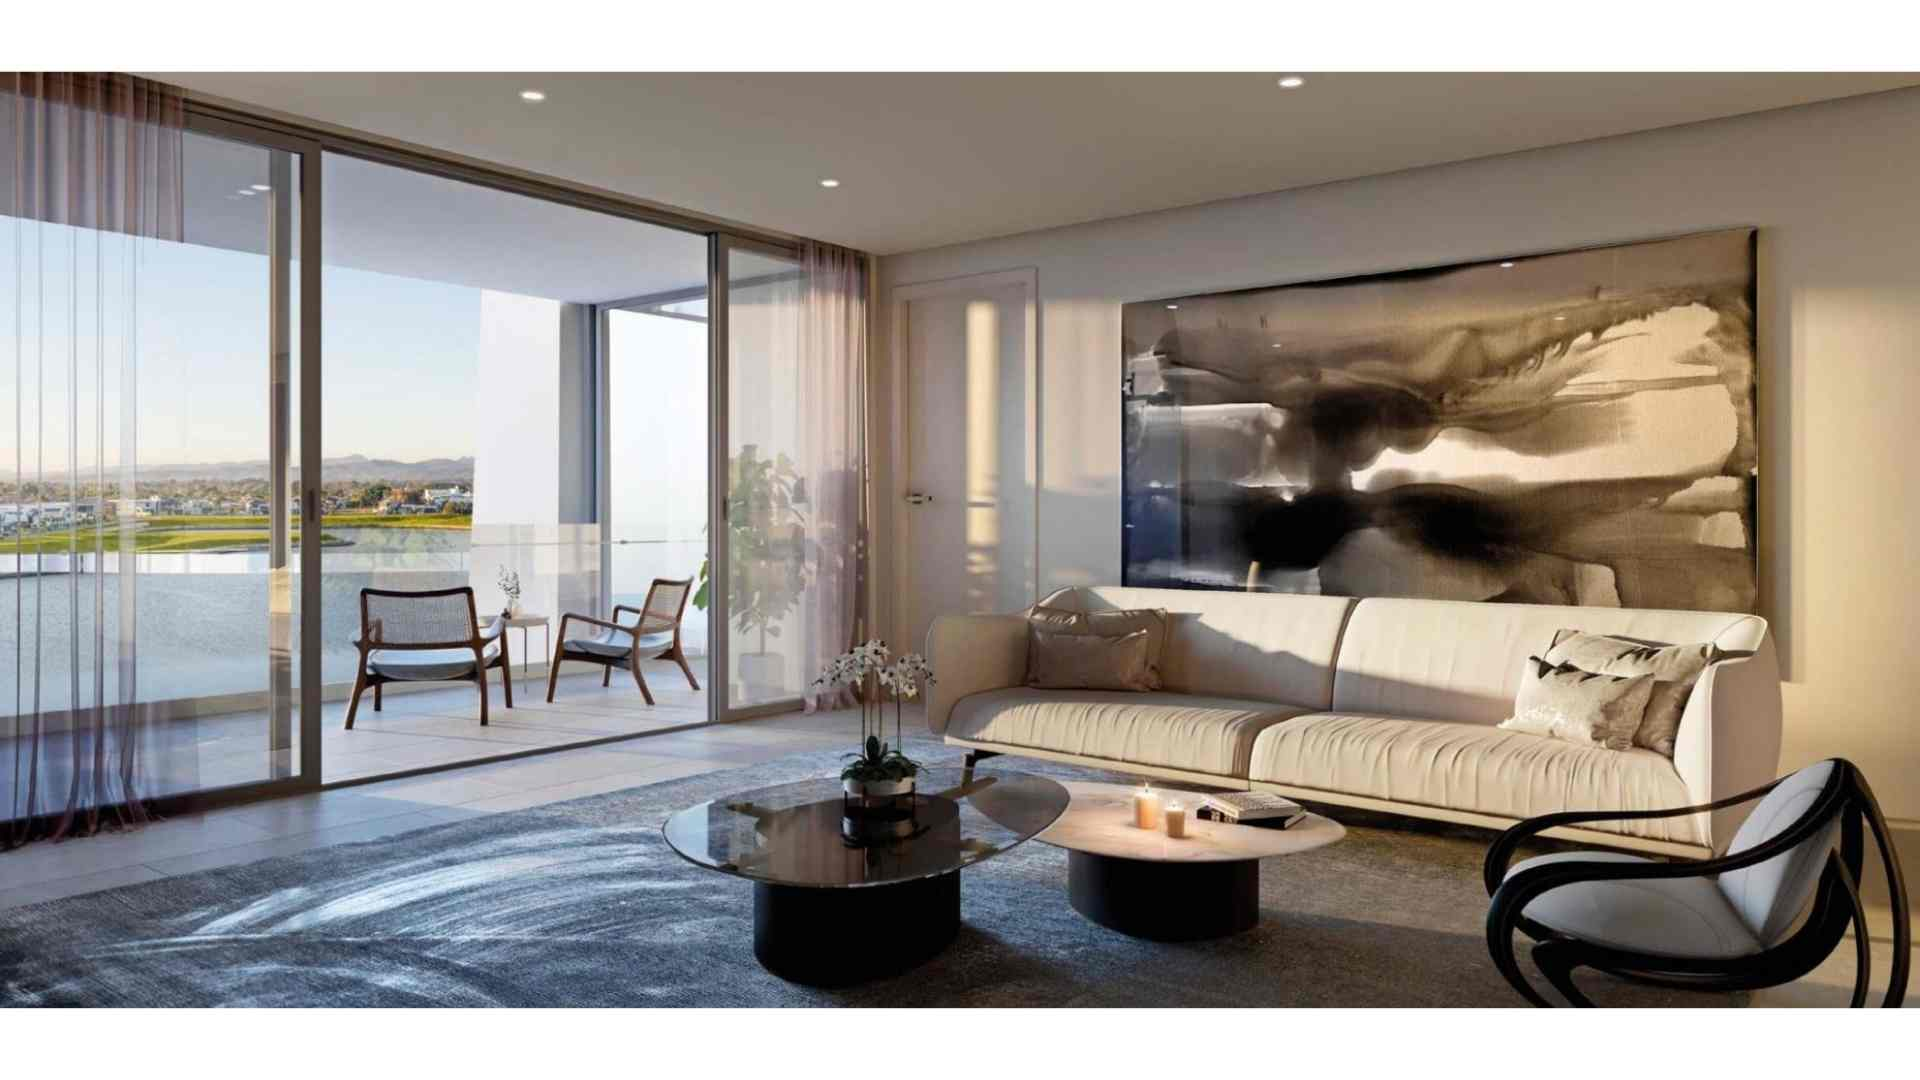 floor to ceiling glass sliding door connecting living room to balcony